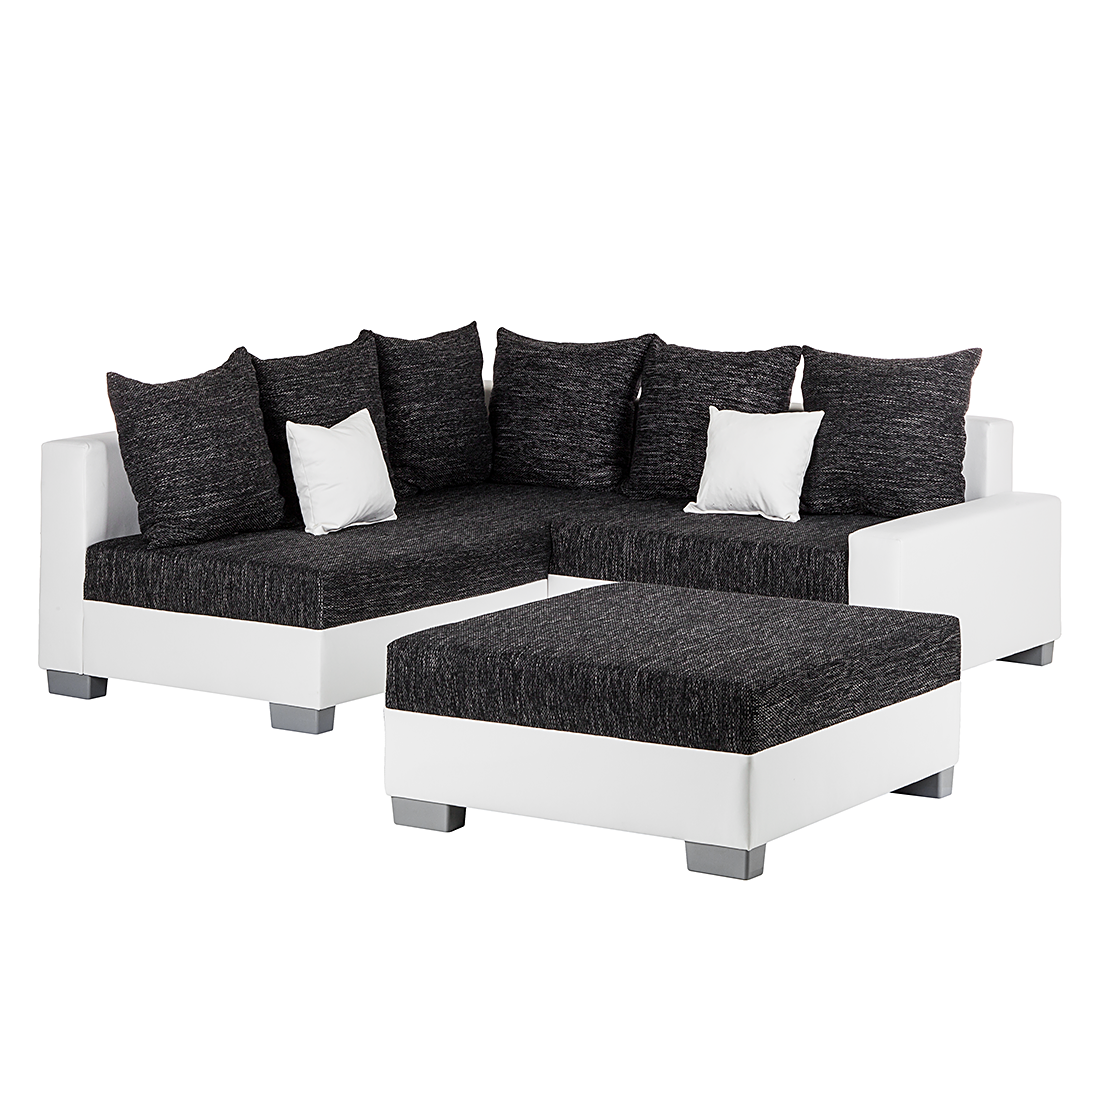 Ecksofa mit hocker schwarz wei ottomane links eckcouch for Eckcouch mit hocker